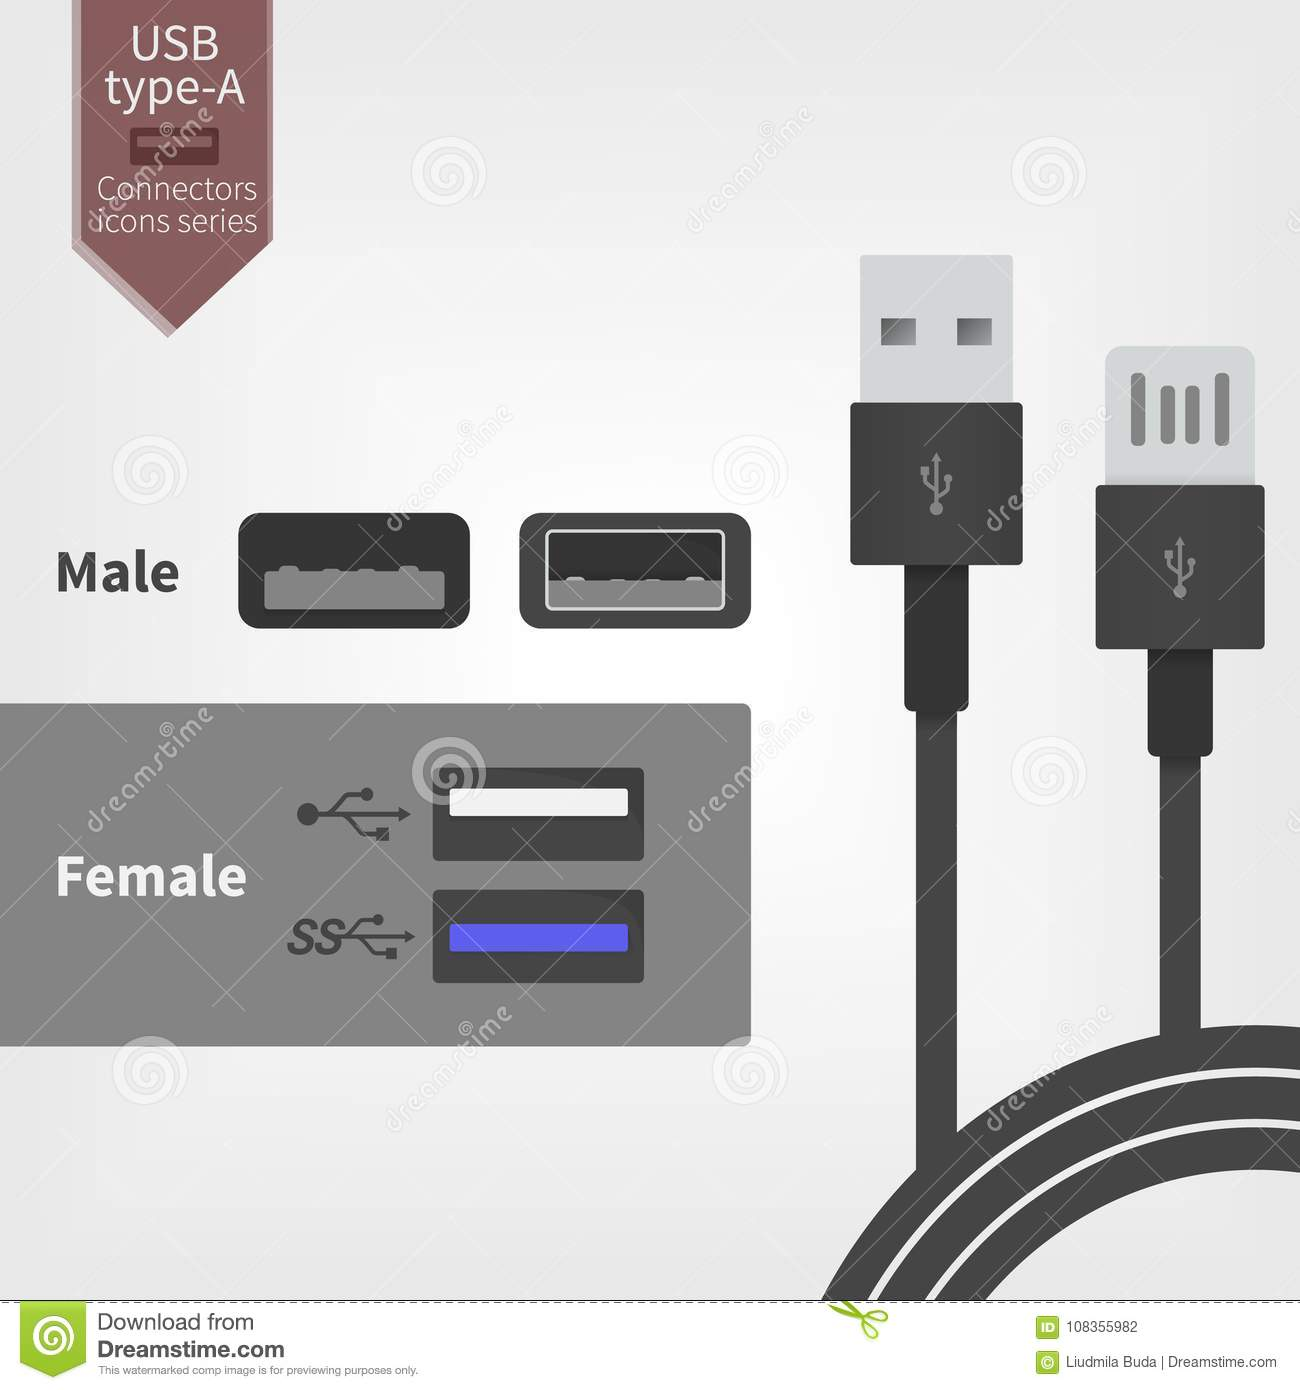 hight resolution of usb socket outlet and connector wires vector illustration in flat style